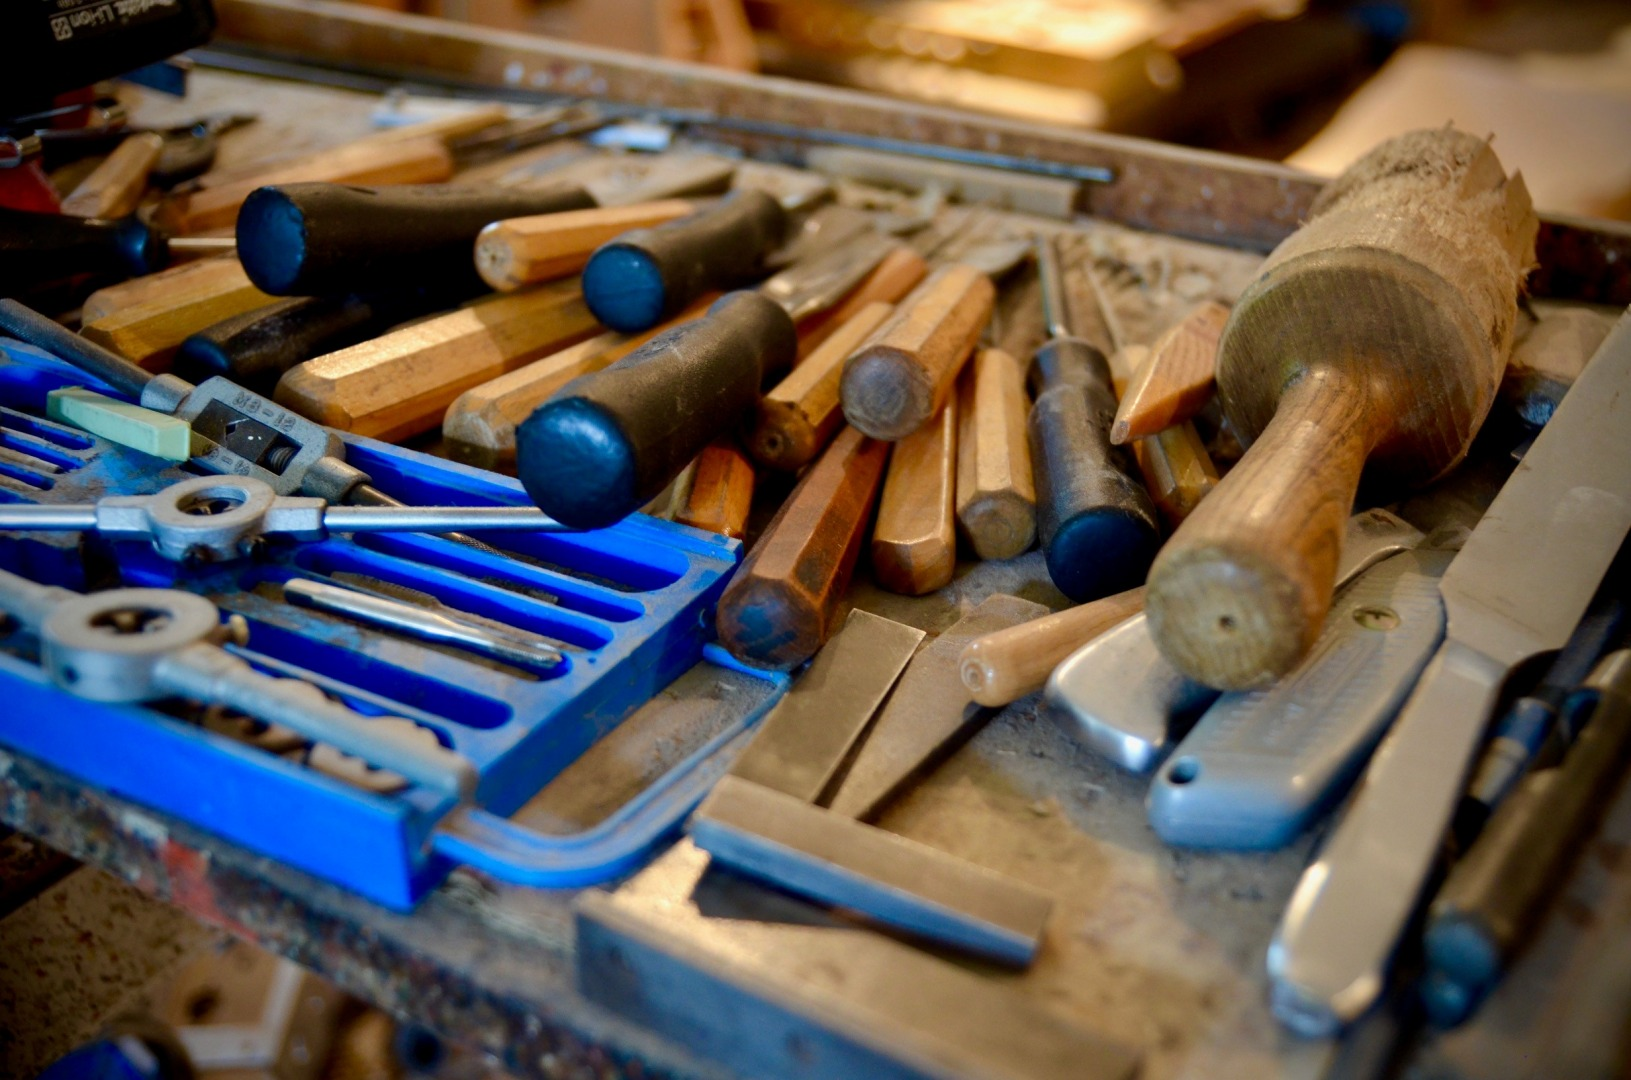 Tools at the workshop